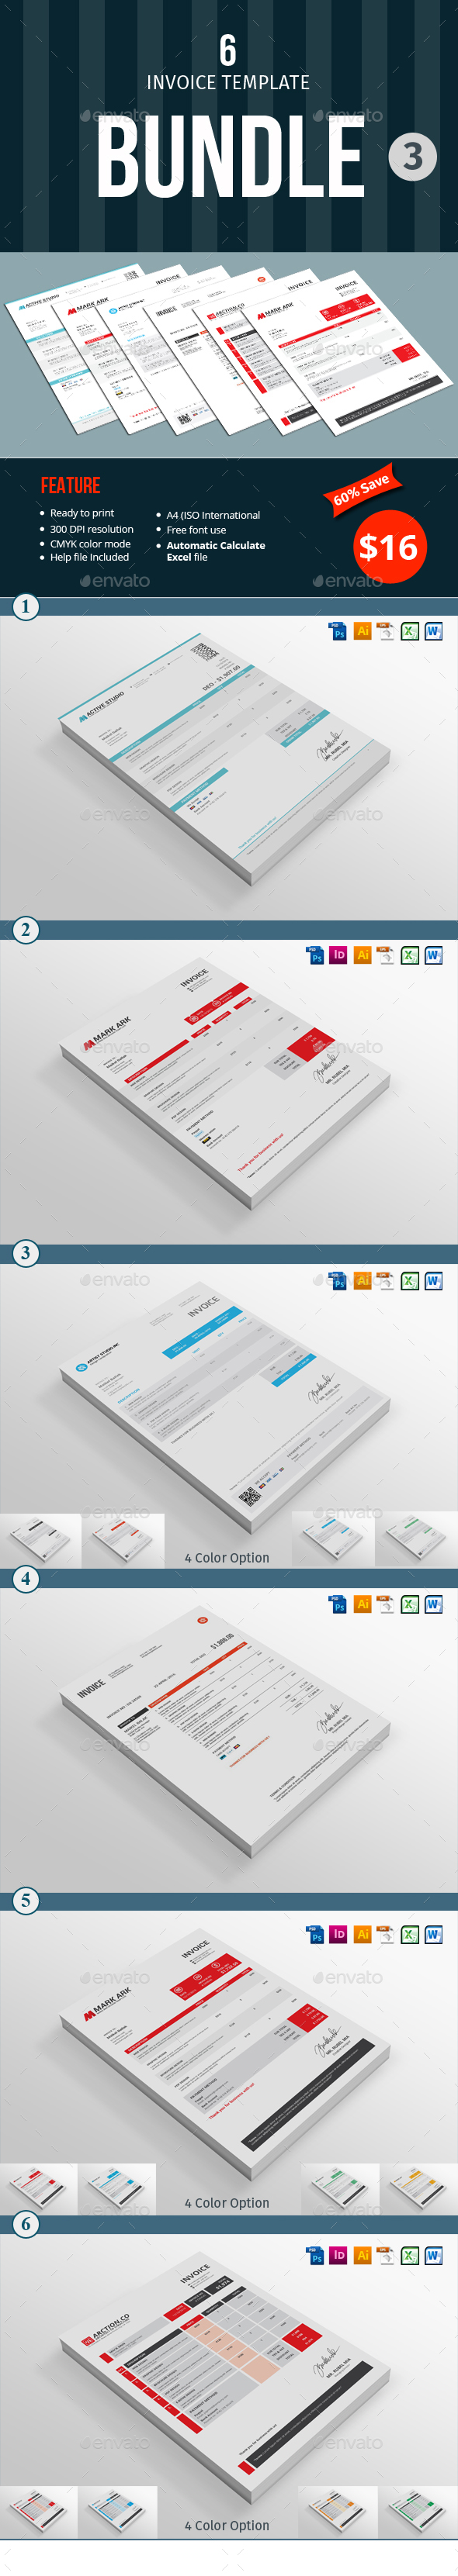 Invoice Template Bundle - 3 - Proposals & Invoices Stationery